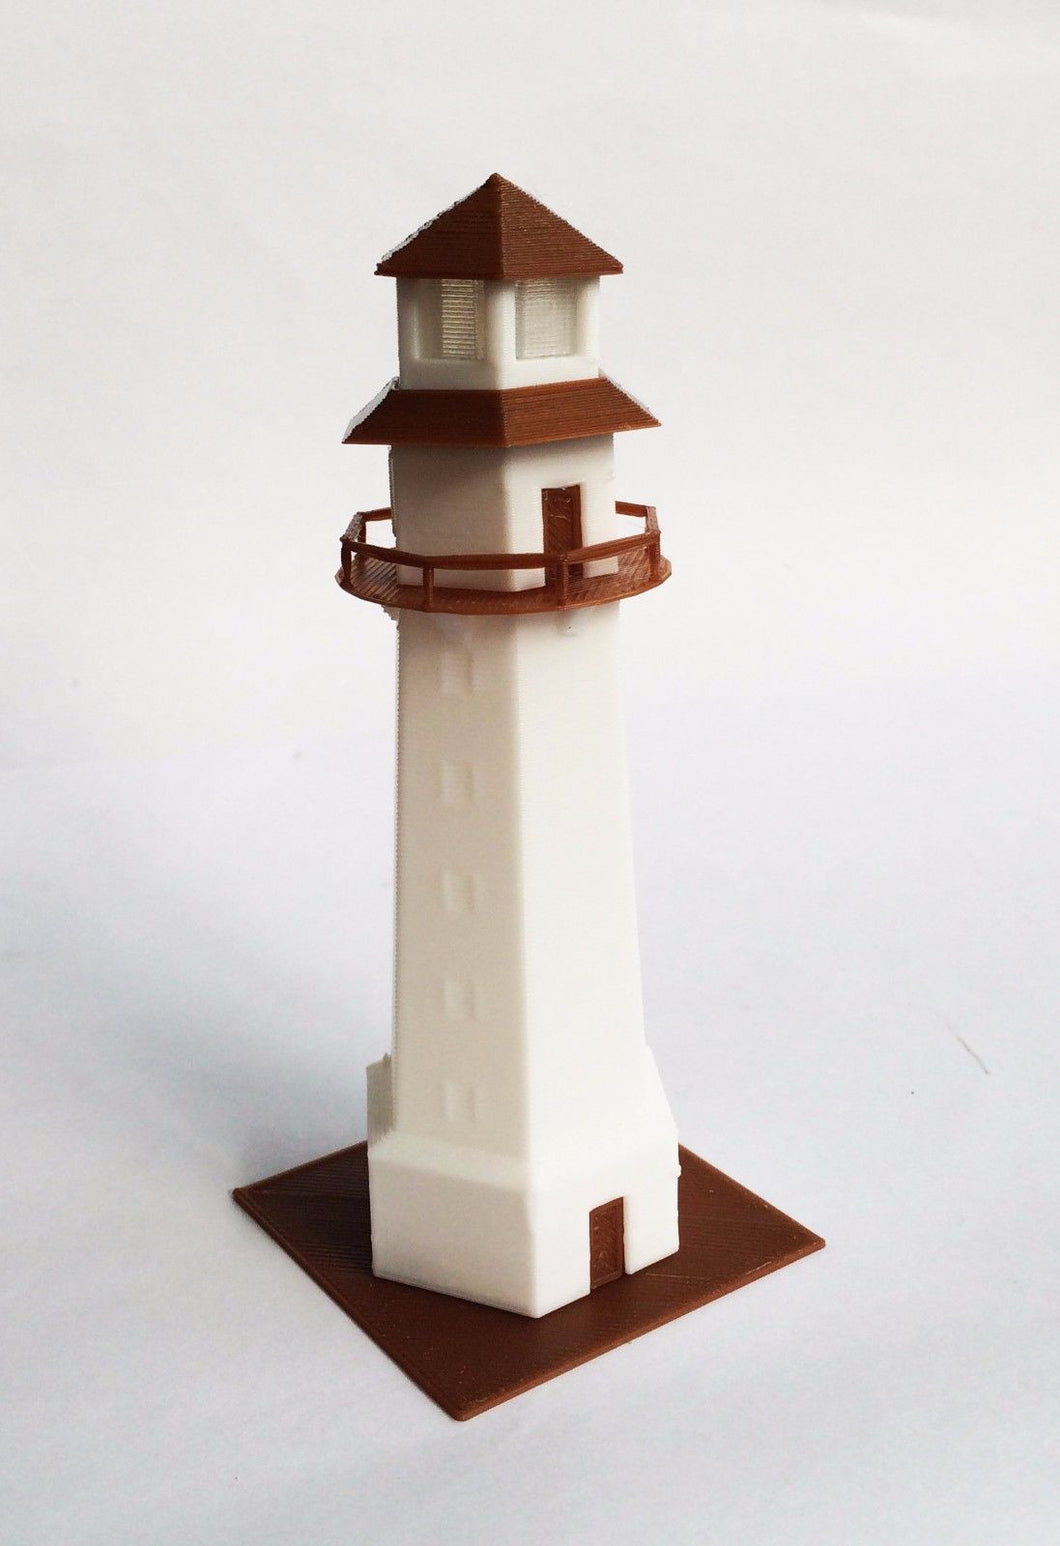 Scenery Building Country Lighthouse N Scale 1:160 Outland Models Train Railway